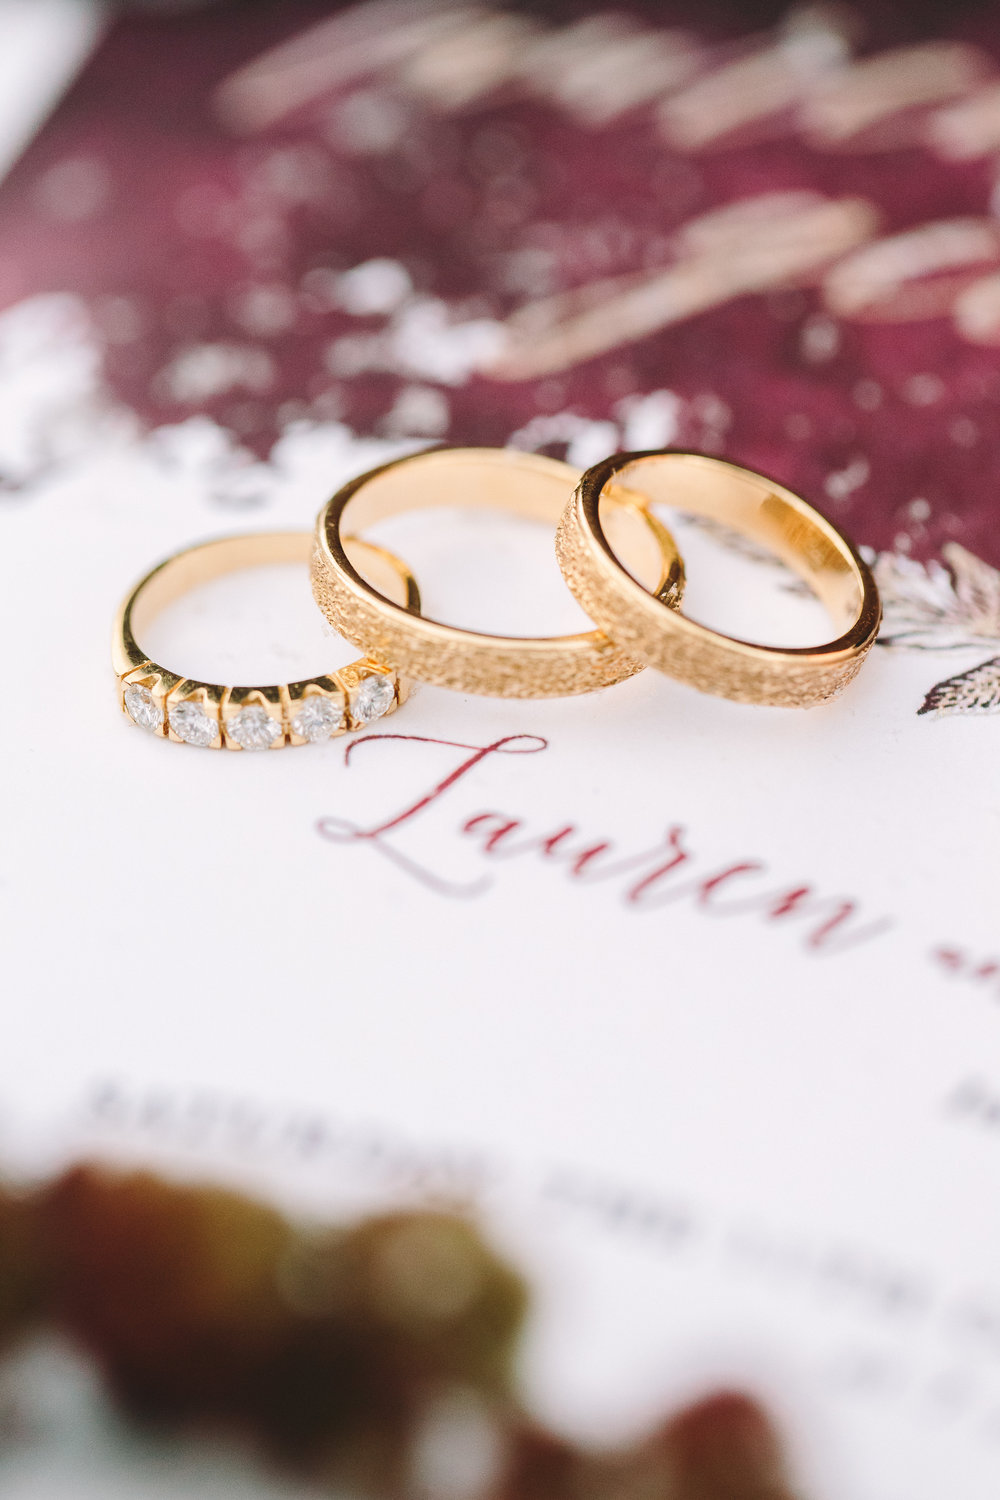 wedding-stationery-golden-ring-jewelry-bride-to-be-luxe-chic